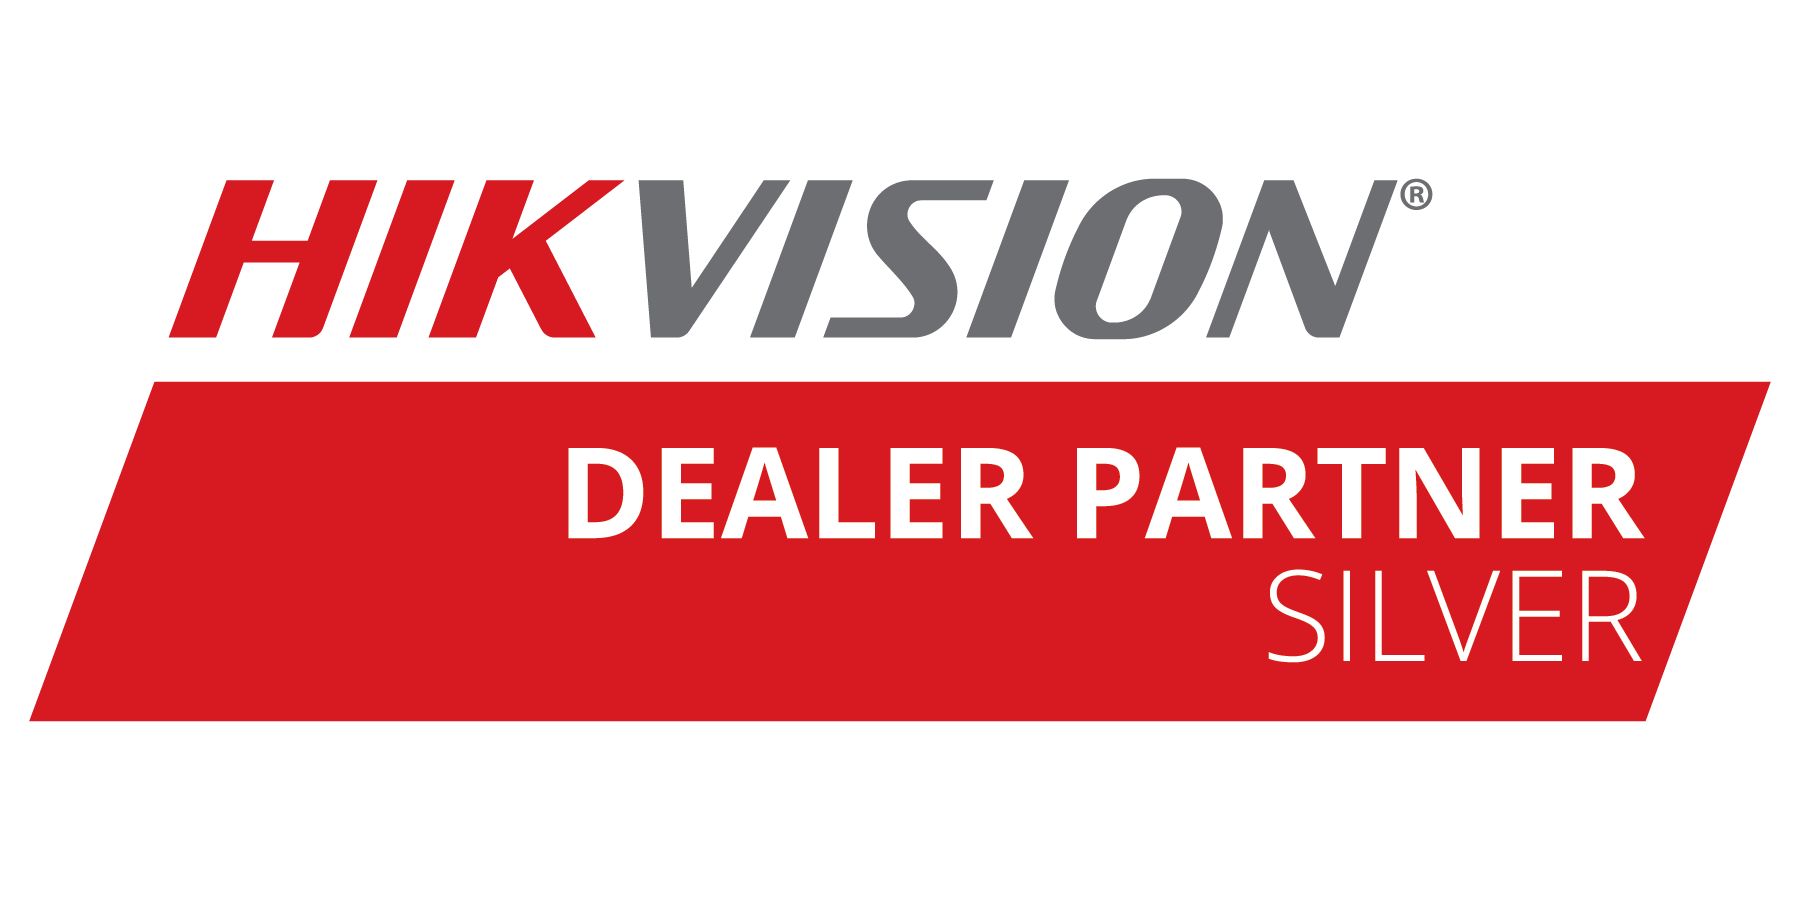 dealer partner silver logo Digital Surveillance Systems